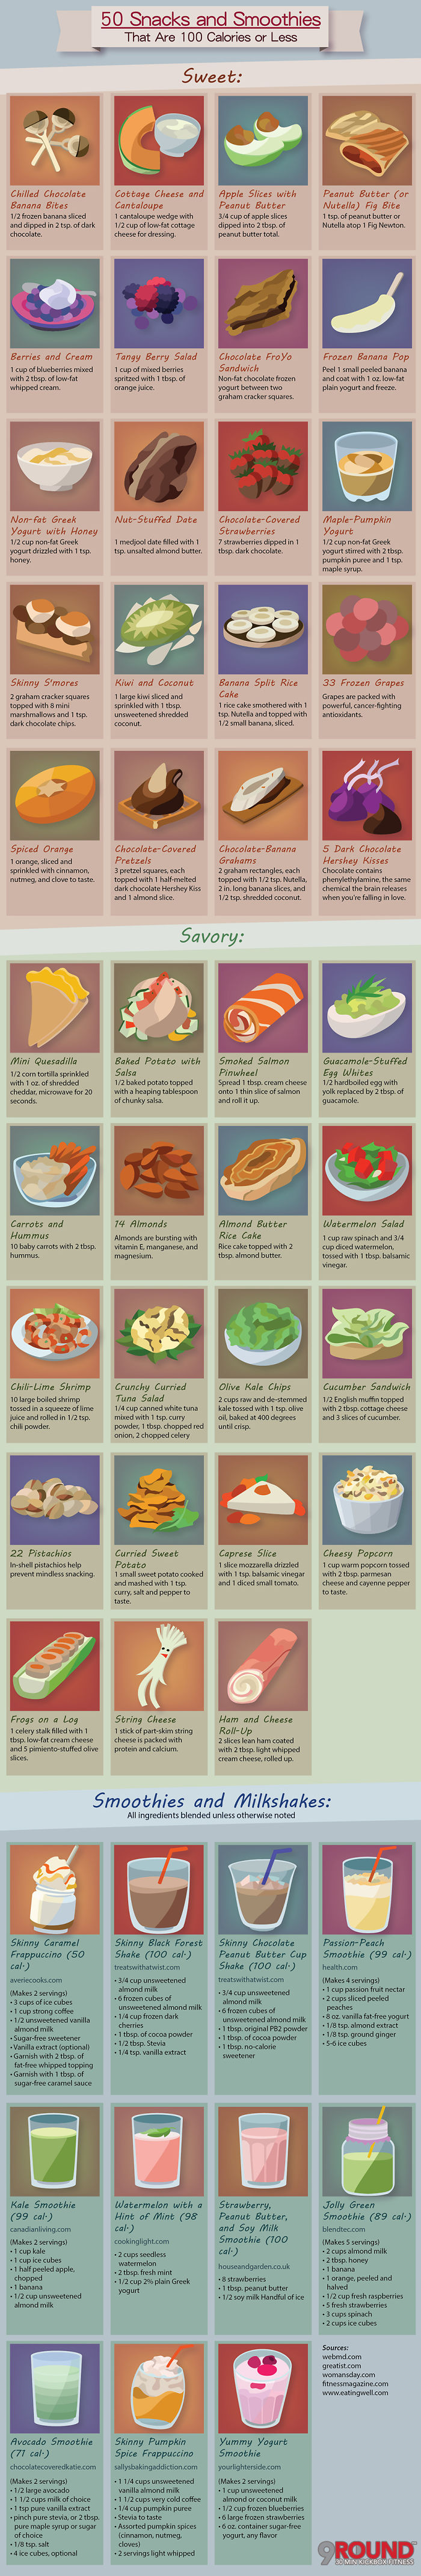 50 Low-calorie Snacks And Smoothies